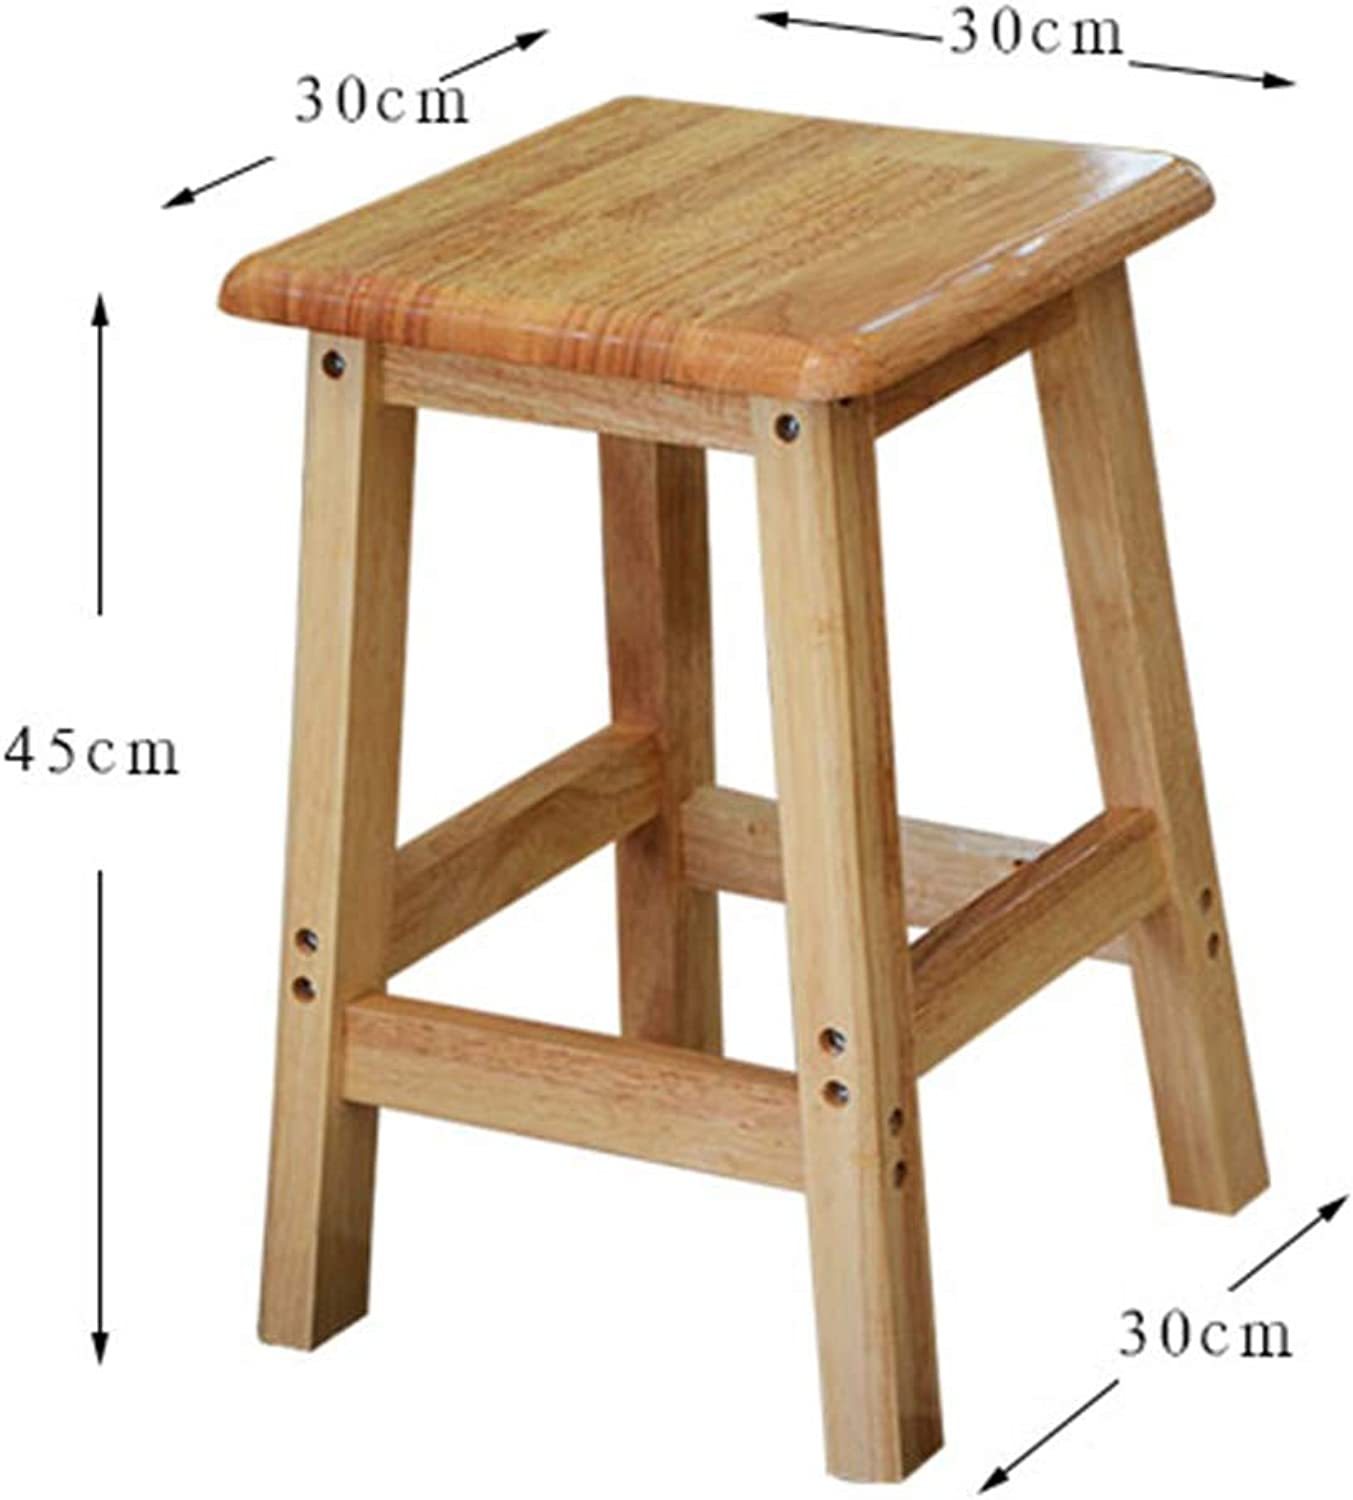 ZHAOYONGLI Stools Footstool Step Stool High Stool Bench Stool Bar Stool Bench Flower Shelf Stool Coffee Table Stool Solid Wood Guitar Stool Square Stool Creative Solid Durable Long Lasting